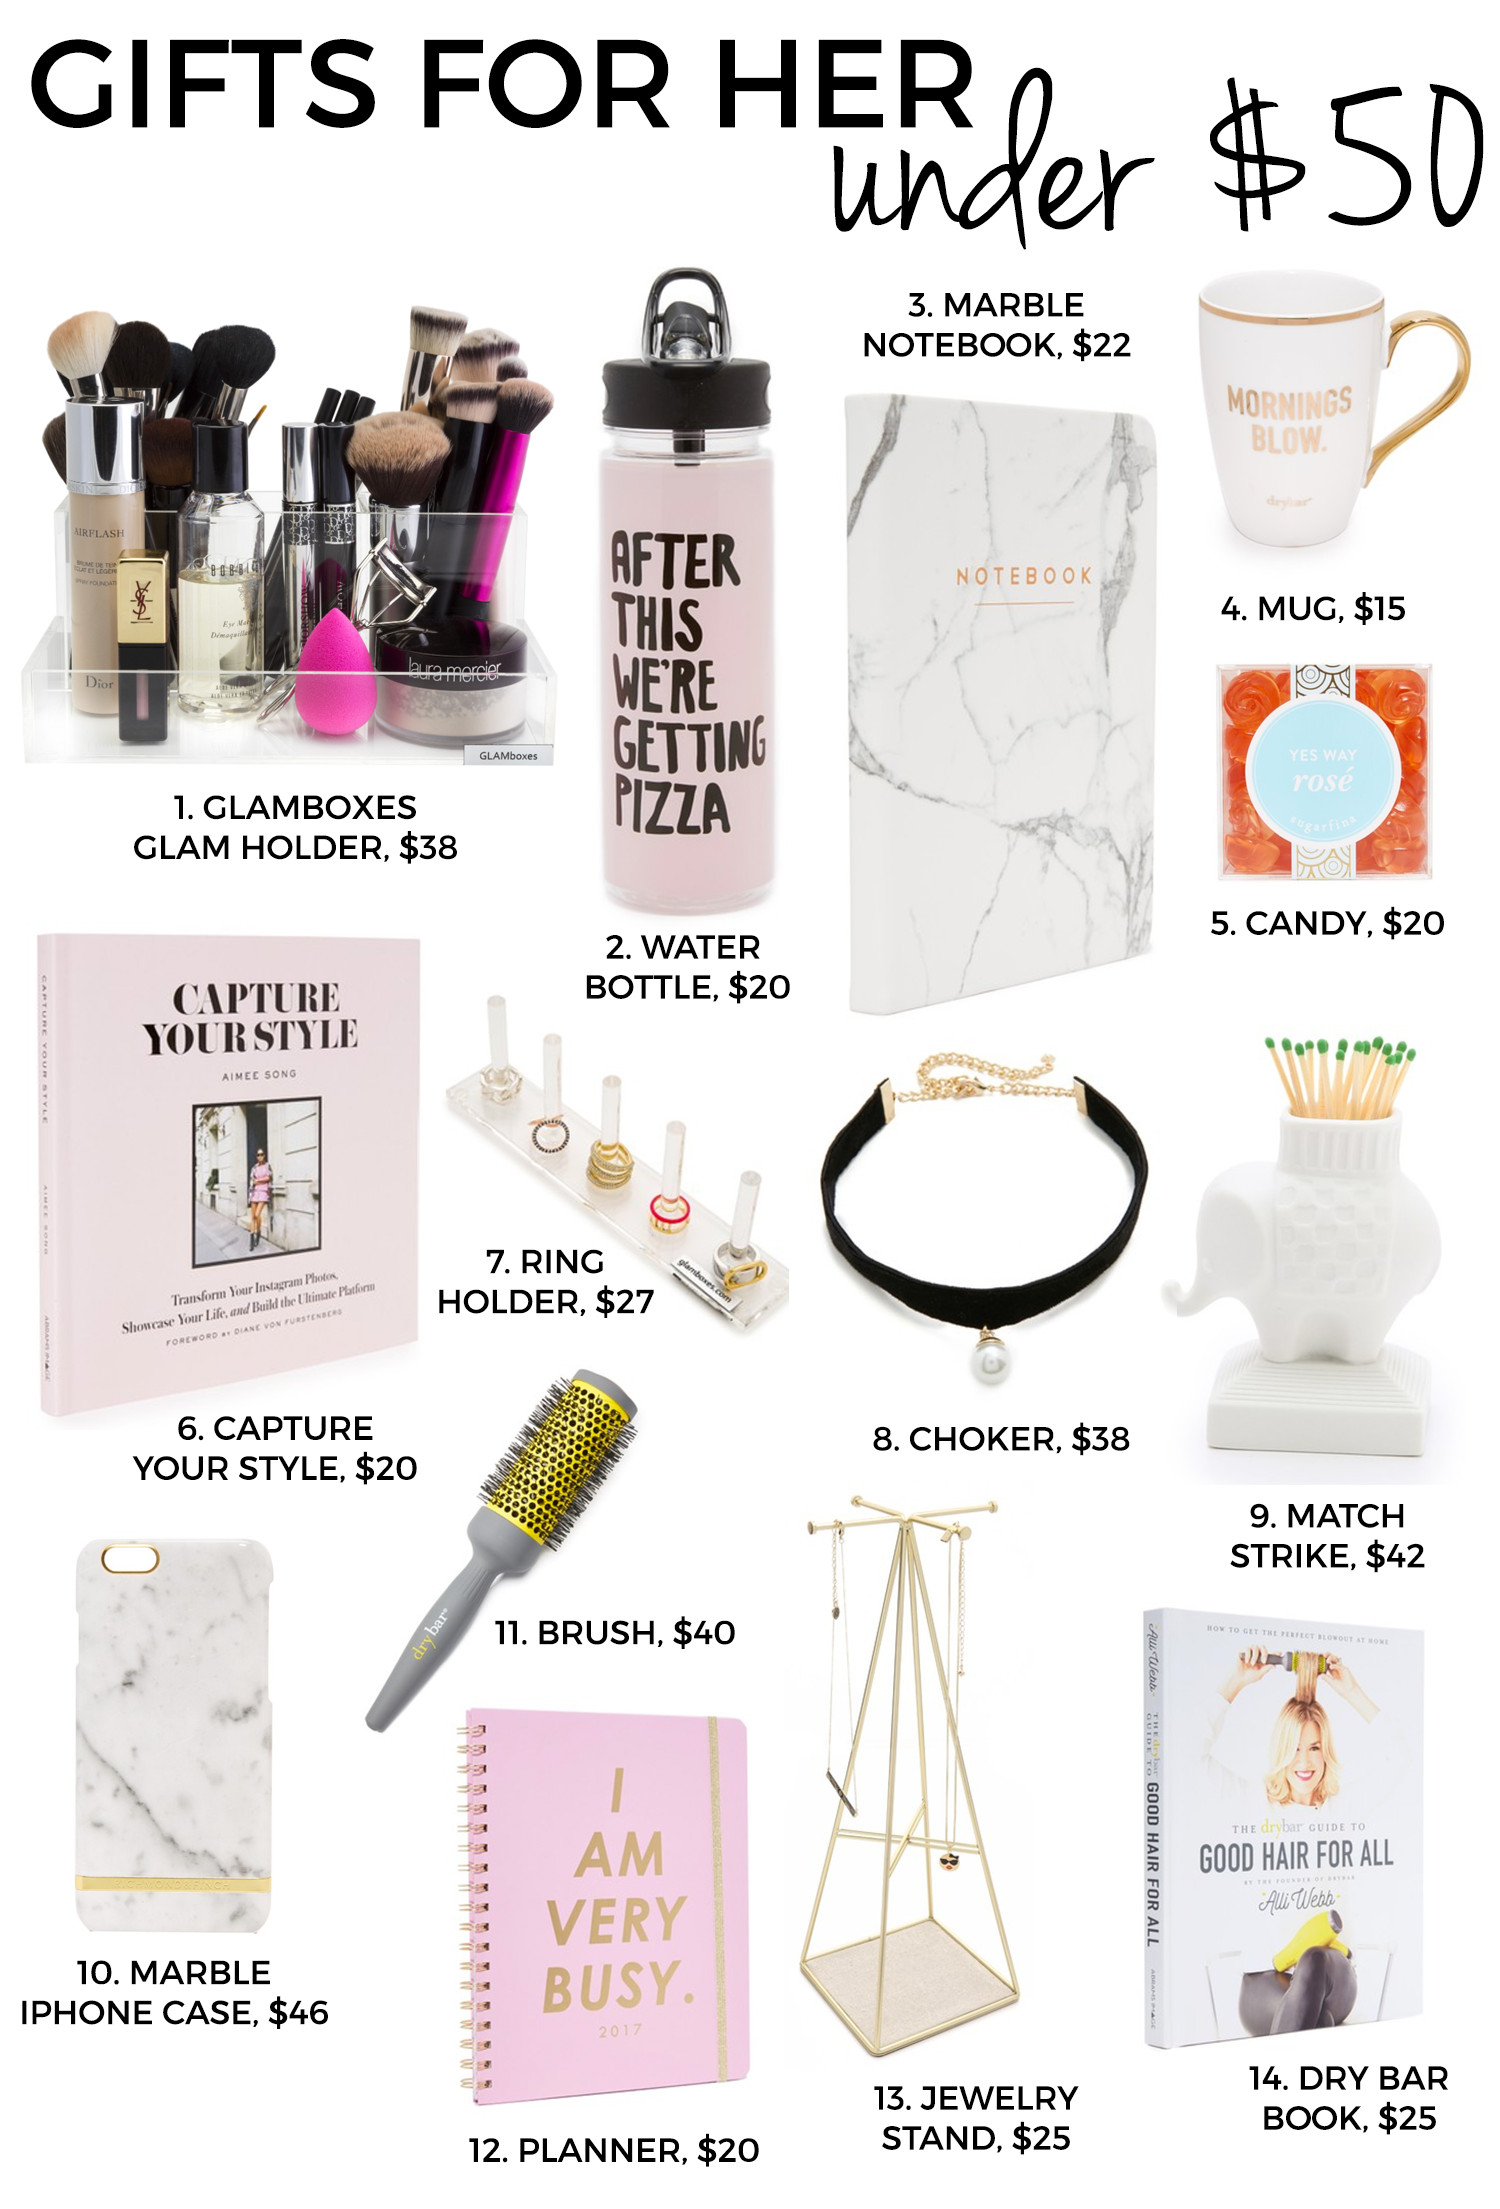 Christmas Gift Ideas For Couples Under 50  Holiday Gifts For Her Gifts For Under $50